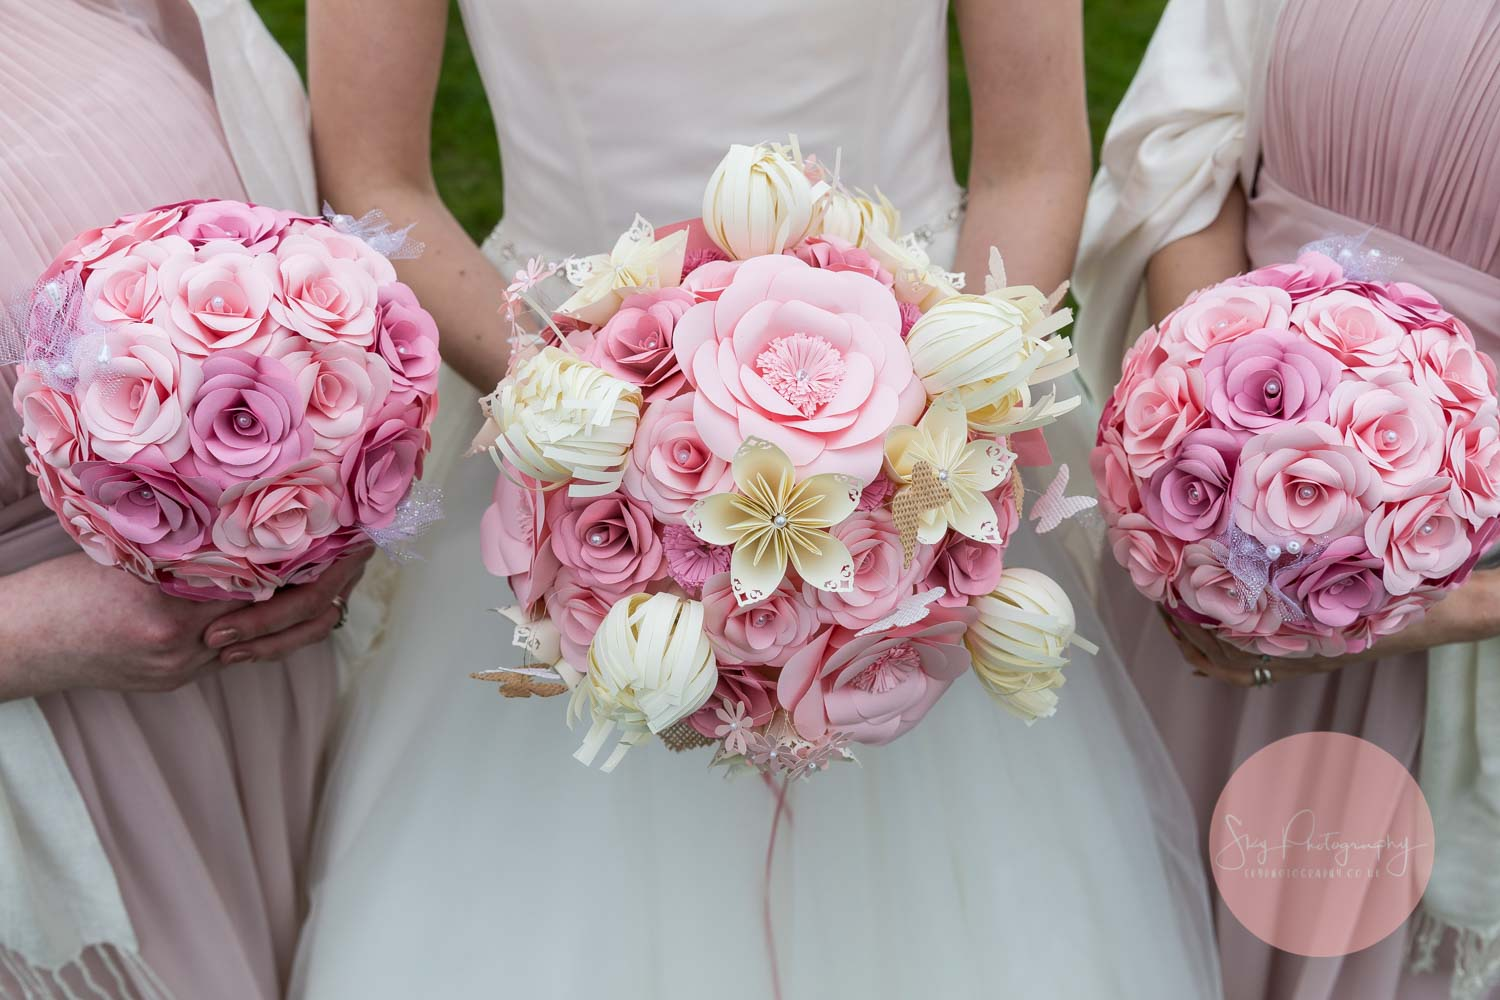 Bride Handmade pink paper wedding bouquets for bride and bridesmaids